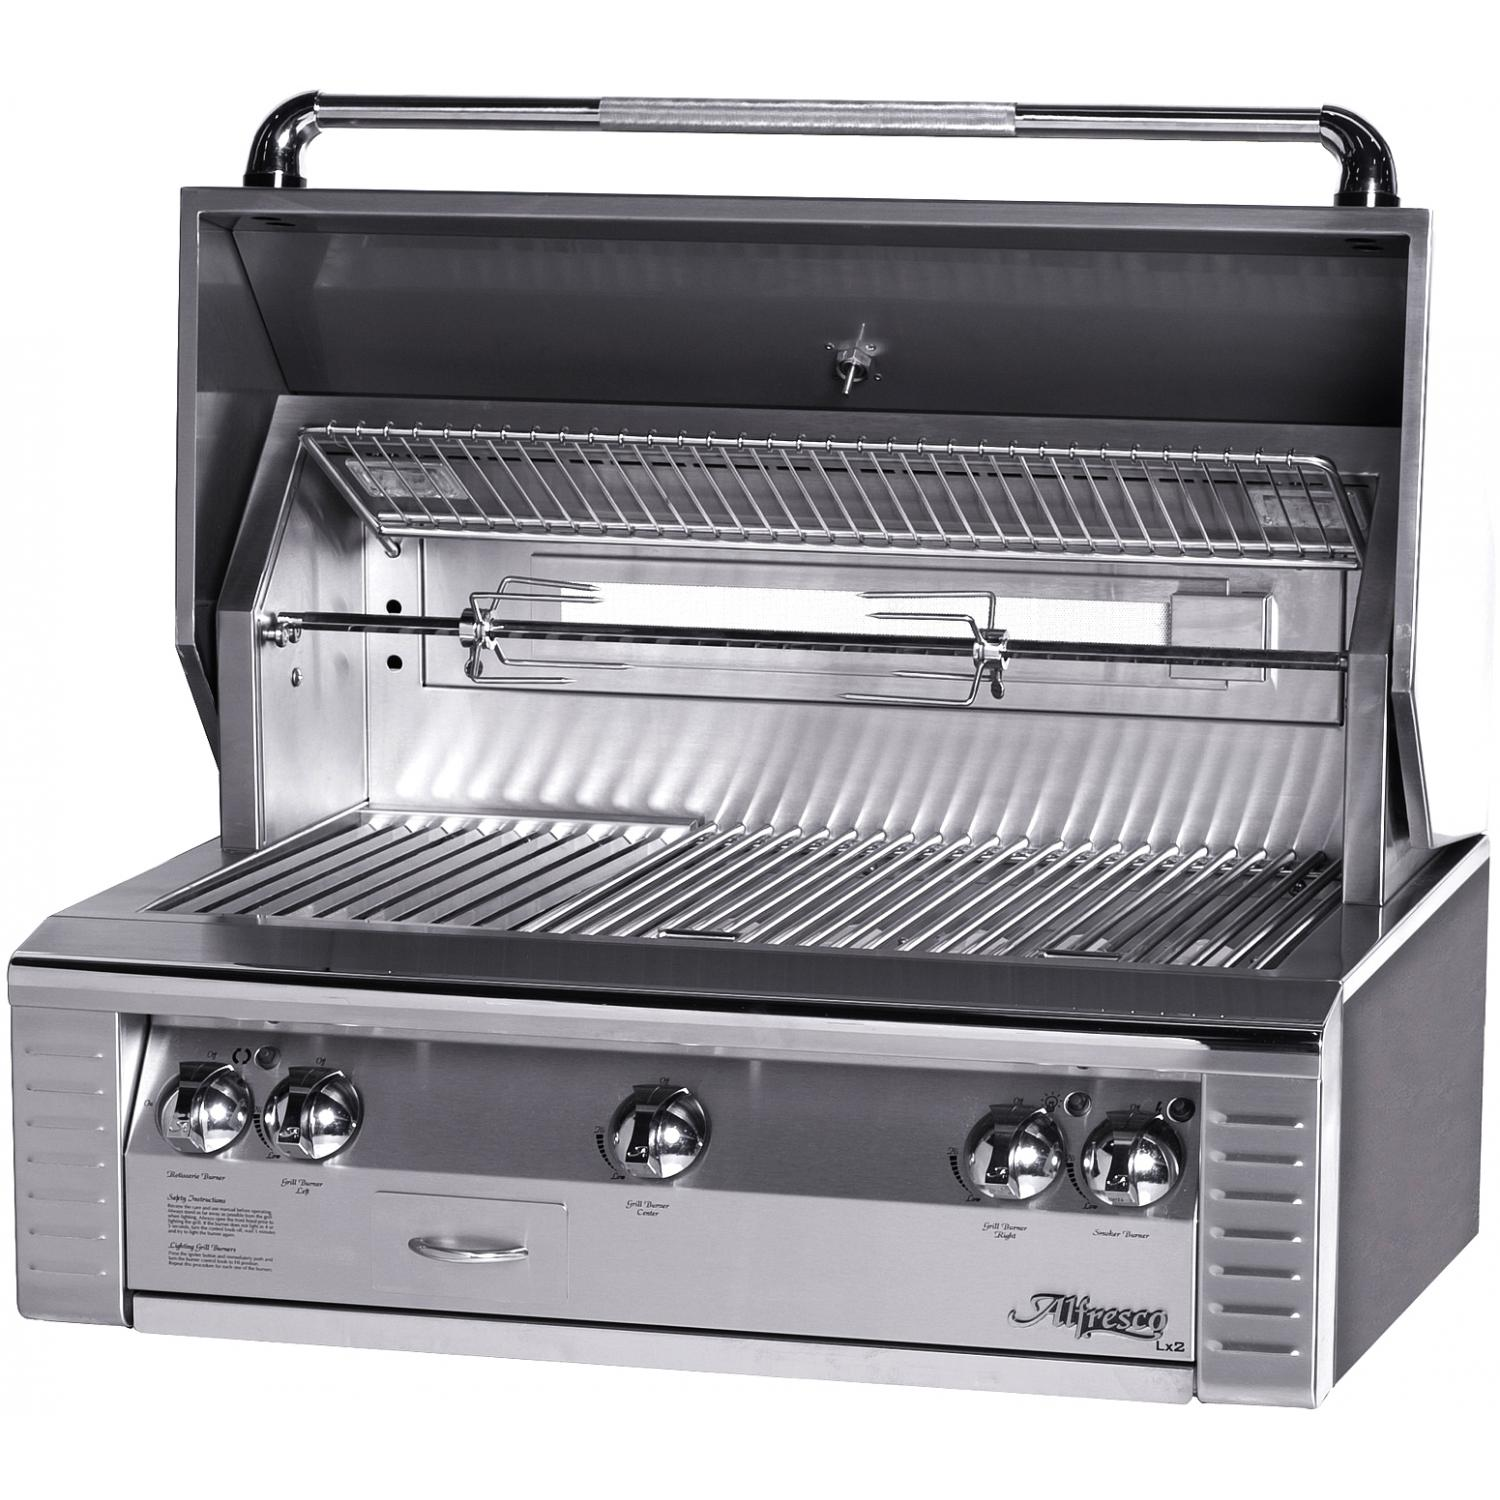 Alfresco Lx2 36-inch Built In Natural Gas Grill With Sear Zone And Rotisserie at Sears.com